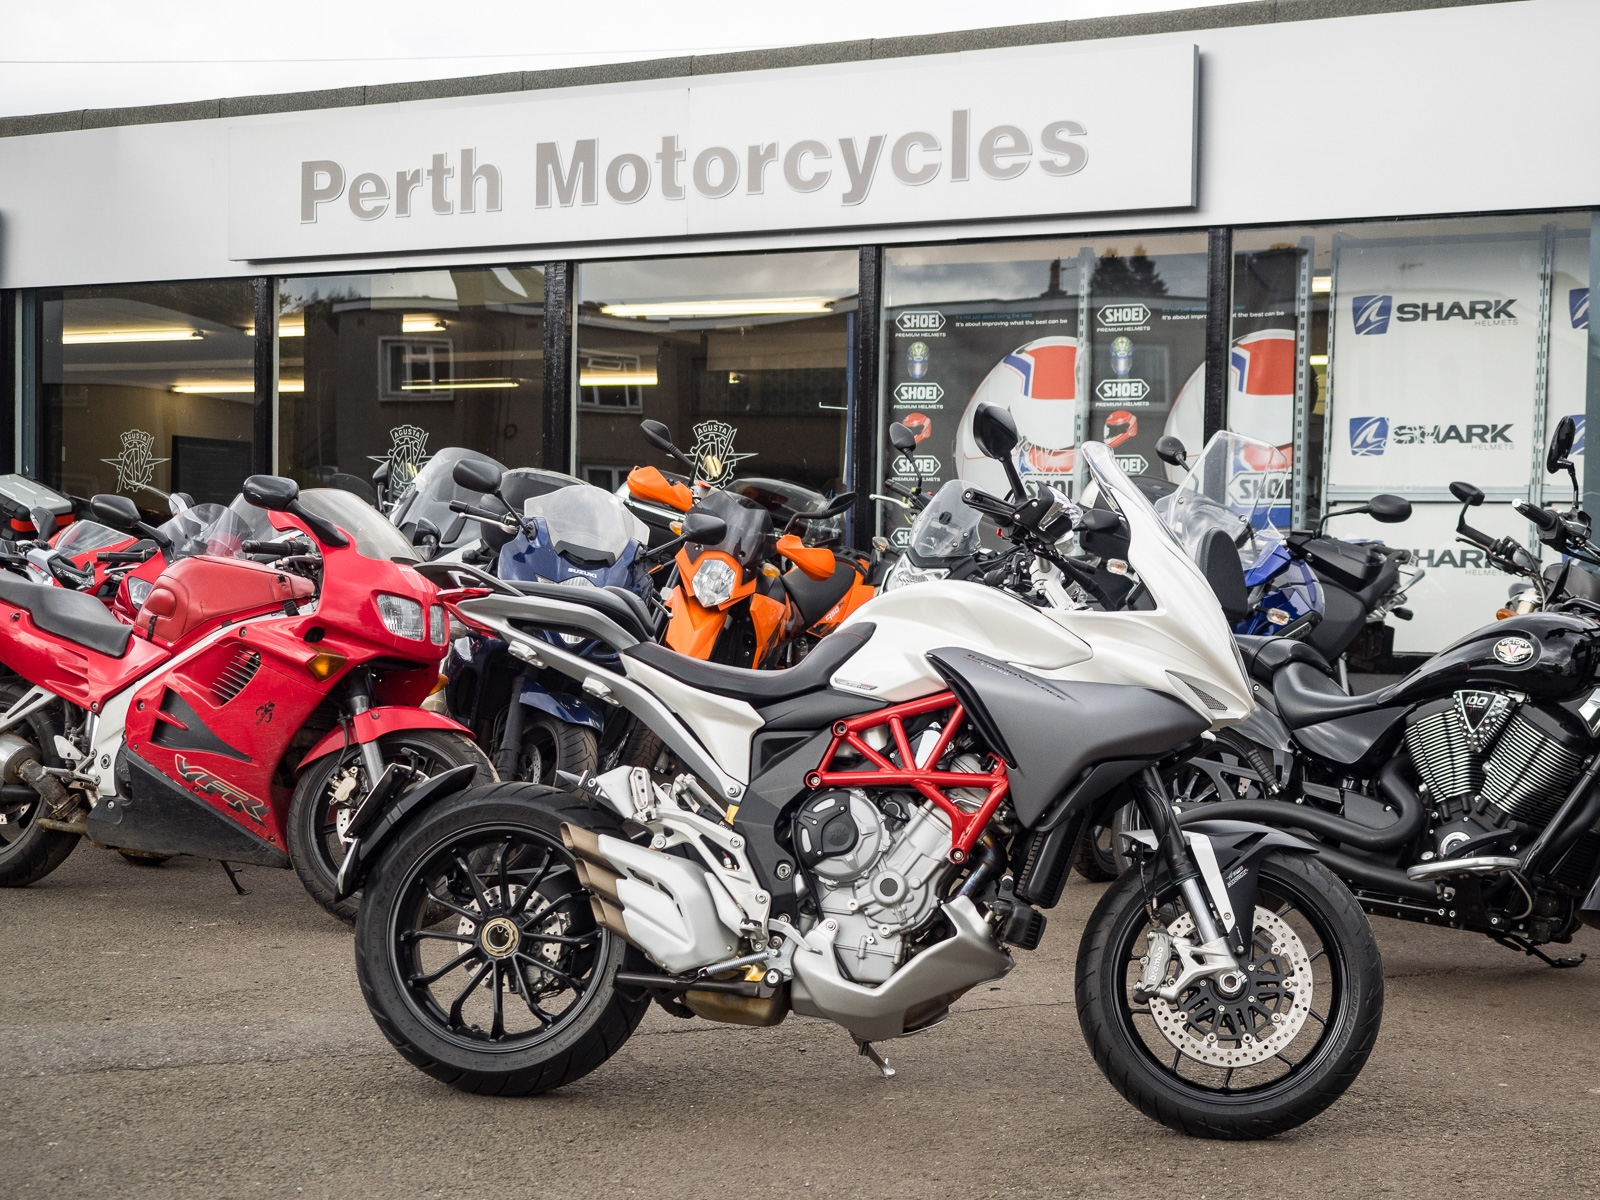 Perth Motorcycles